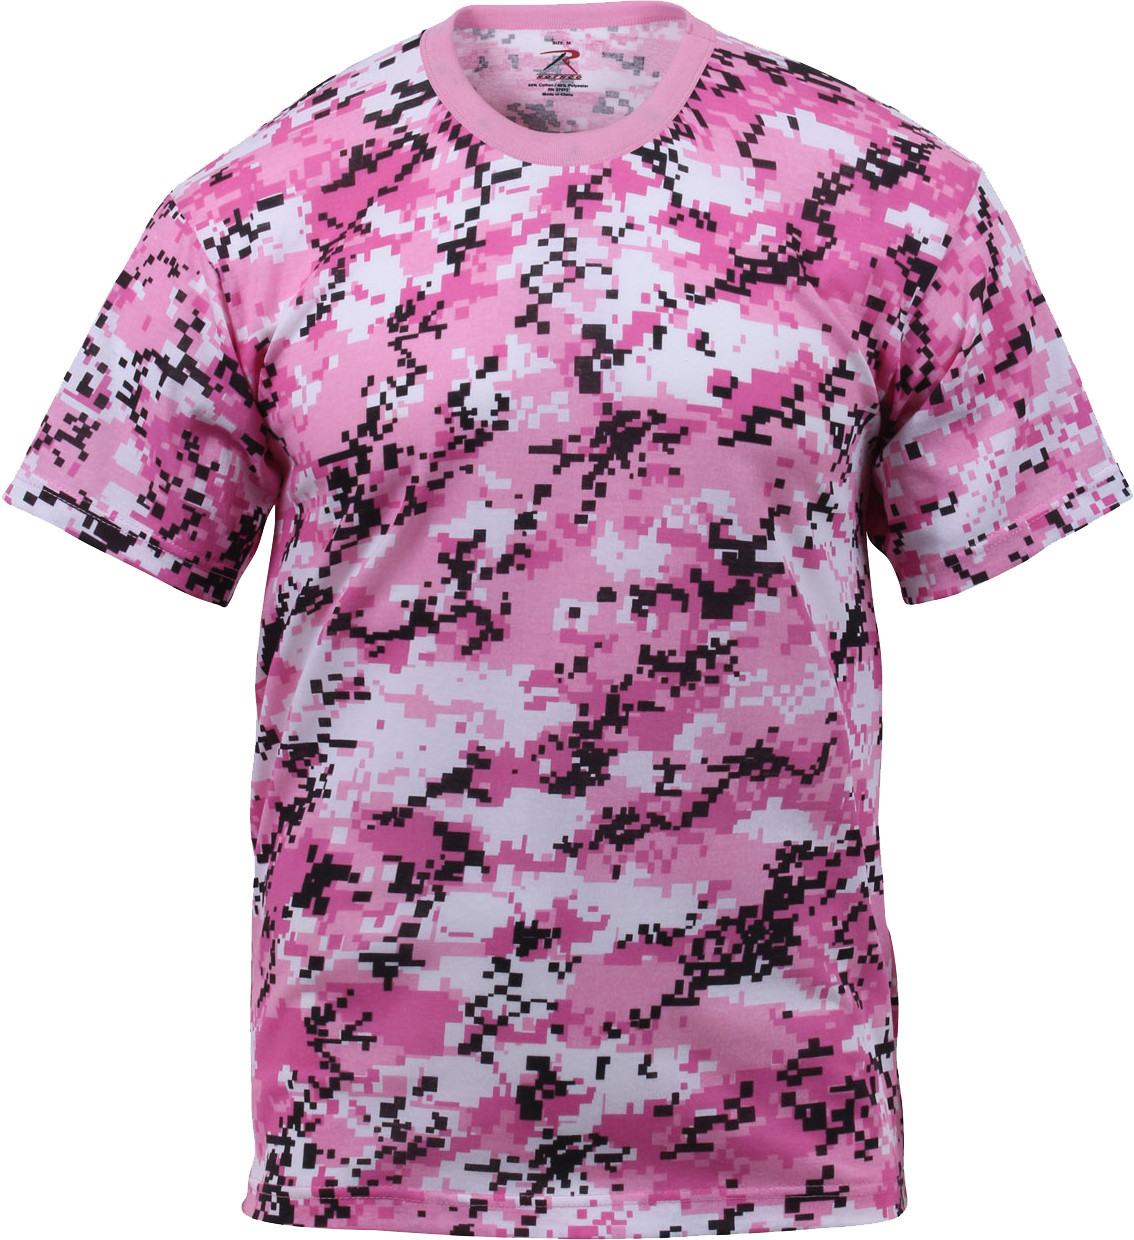 More Views. Pink Digital Camouflage Military Short Sleeve T-Shirt ... 67c25ed5222